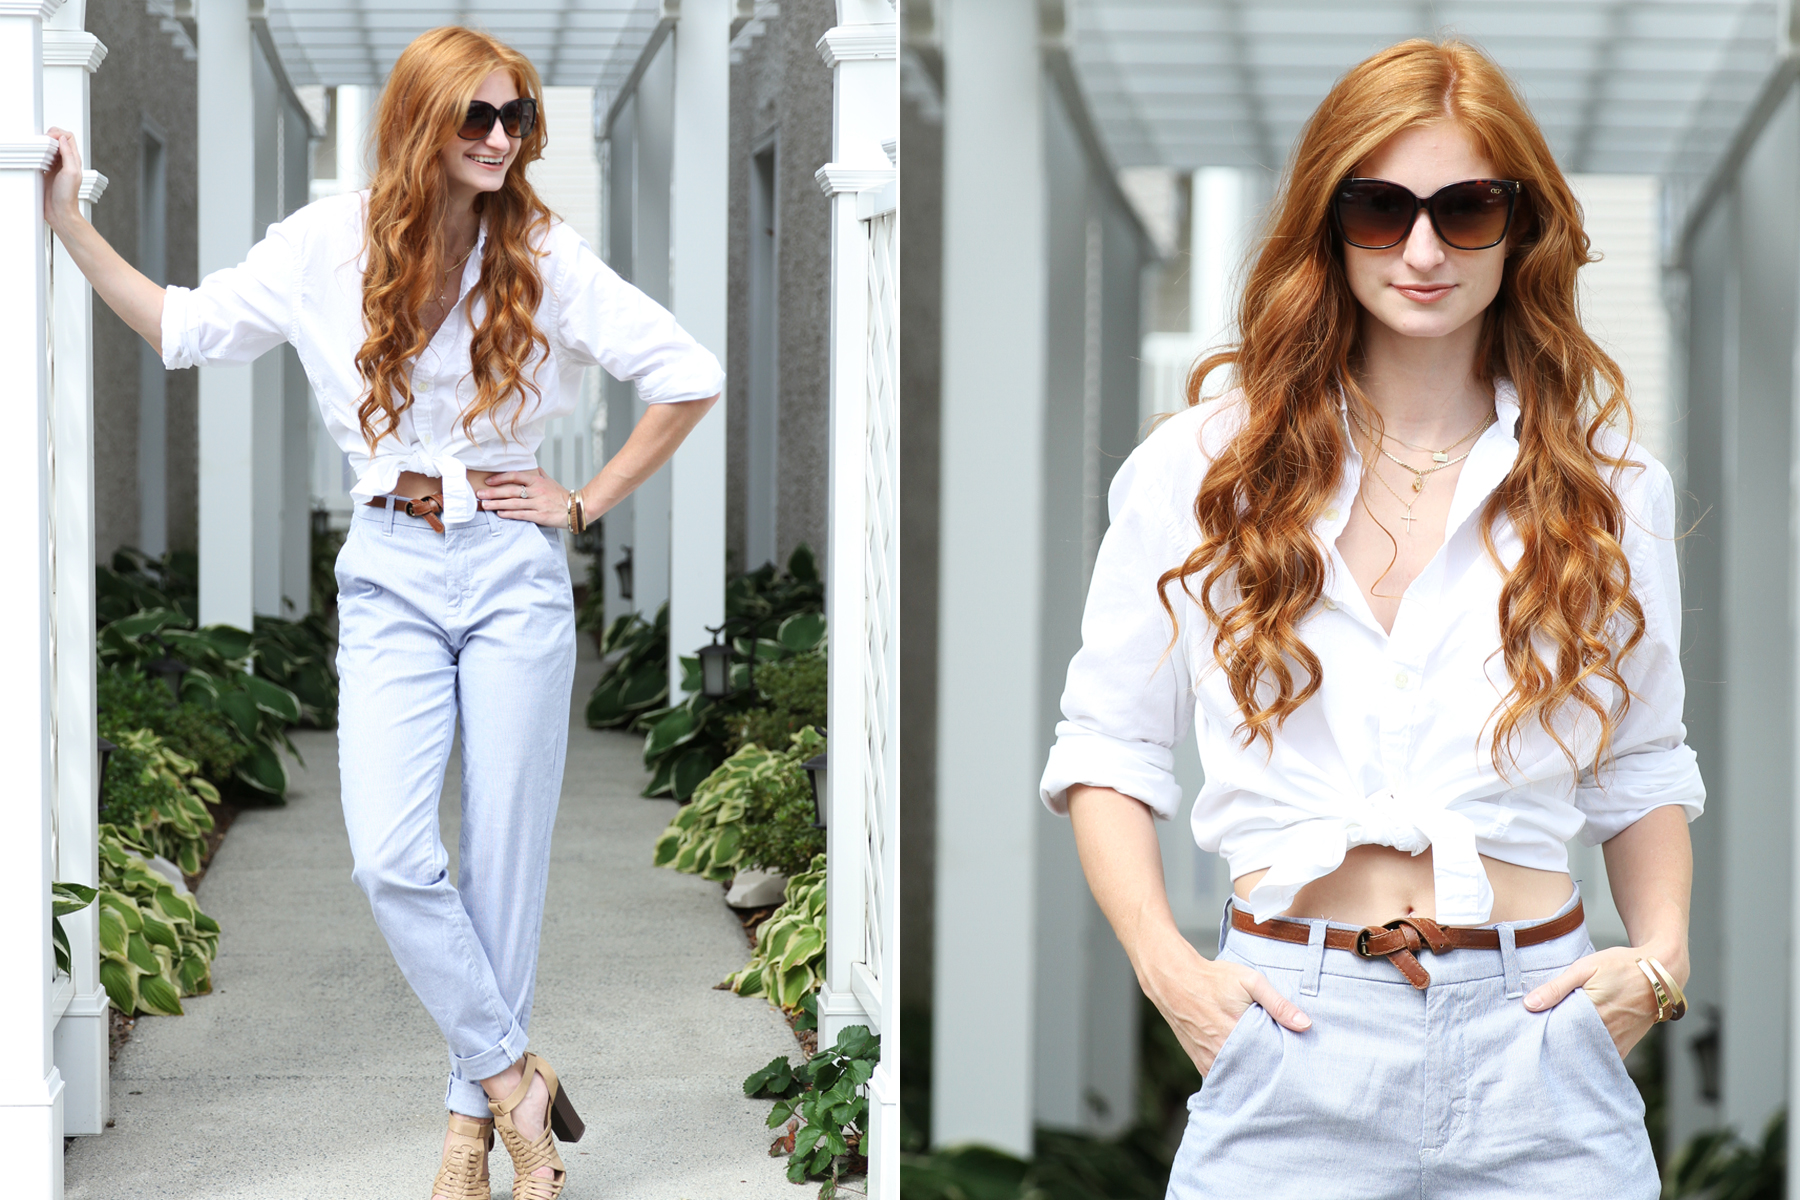 Redhead girl smiling in white shirt, blue pants, and sunglasses